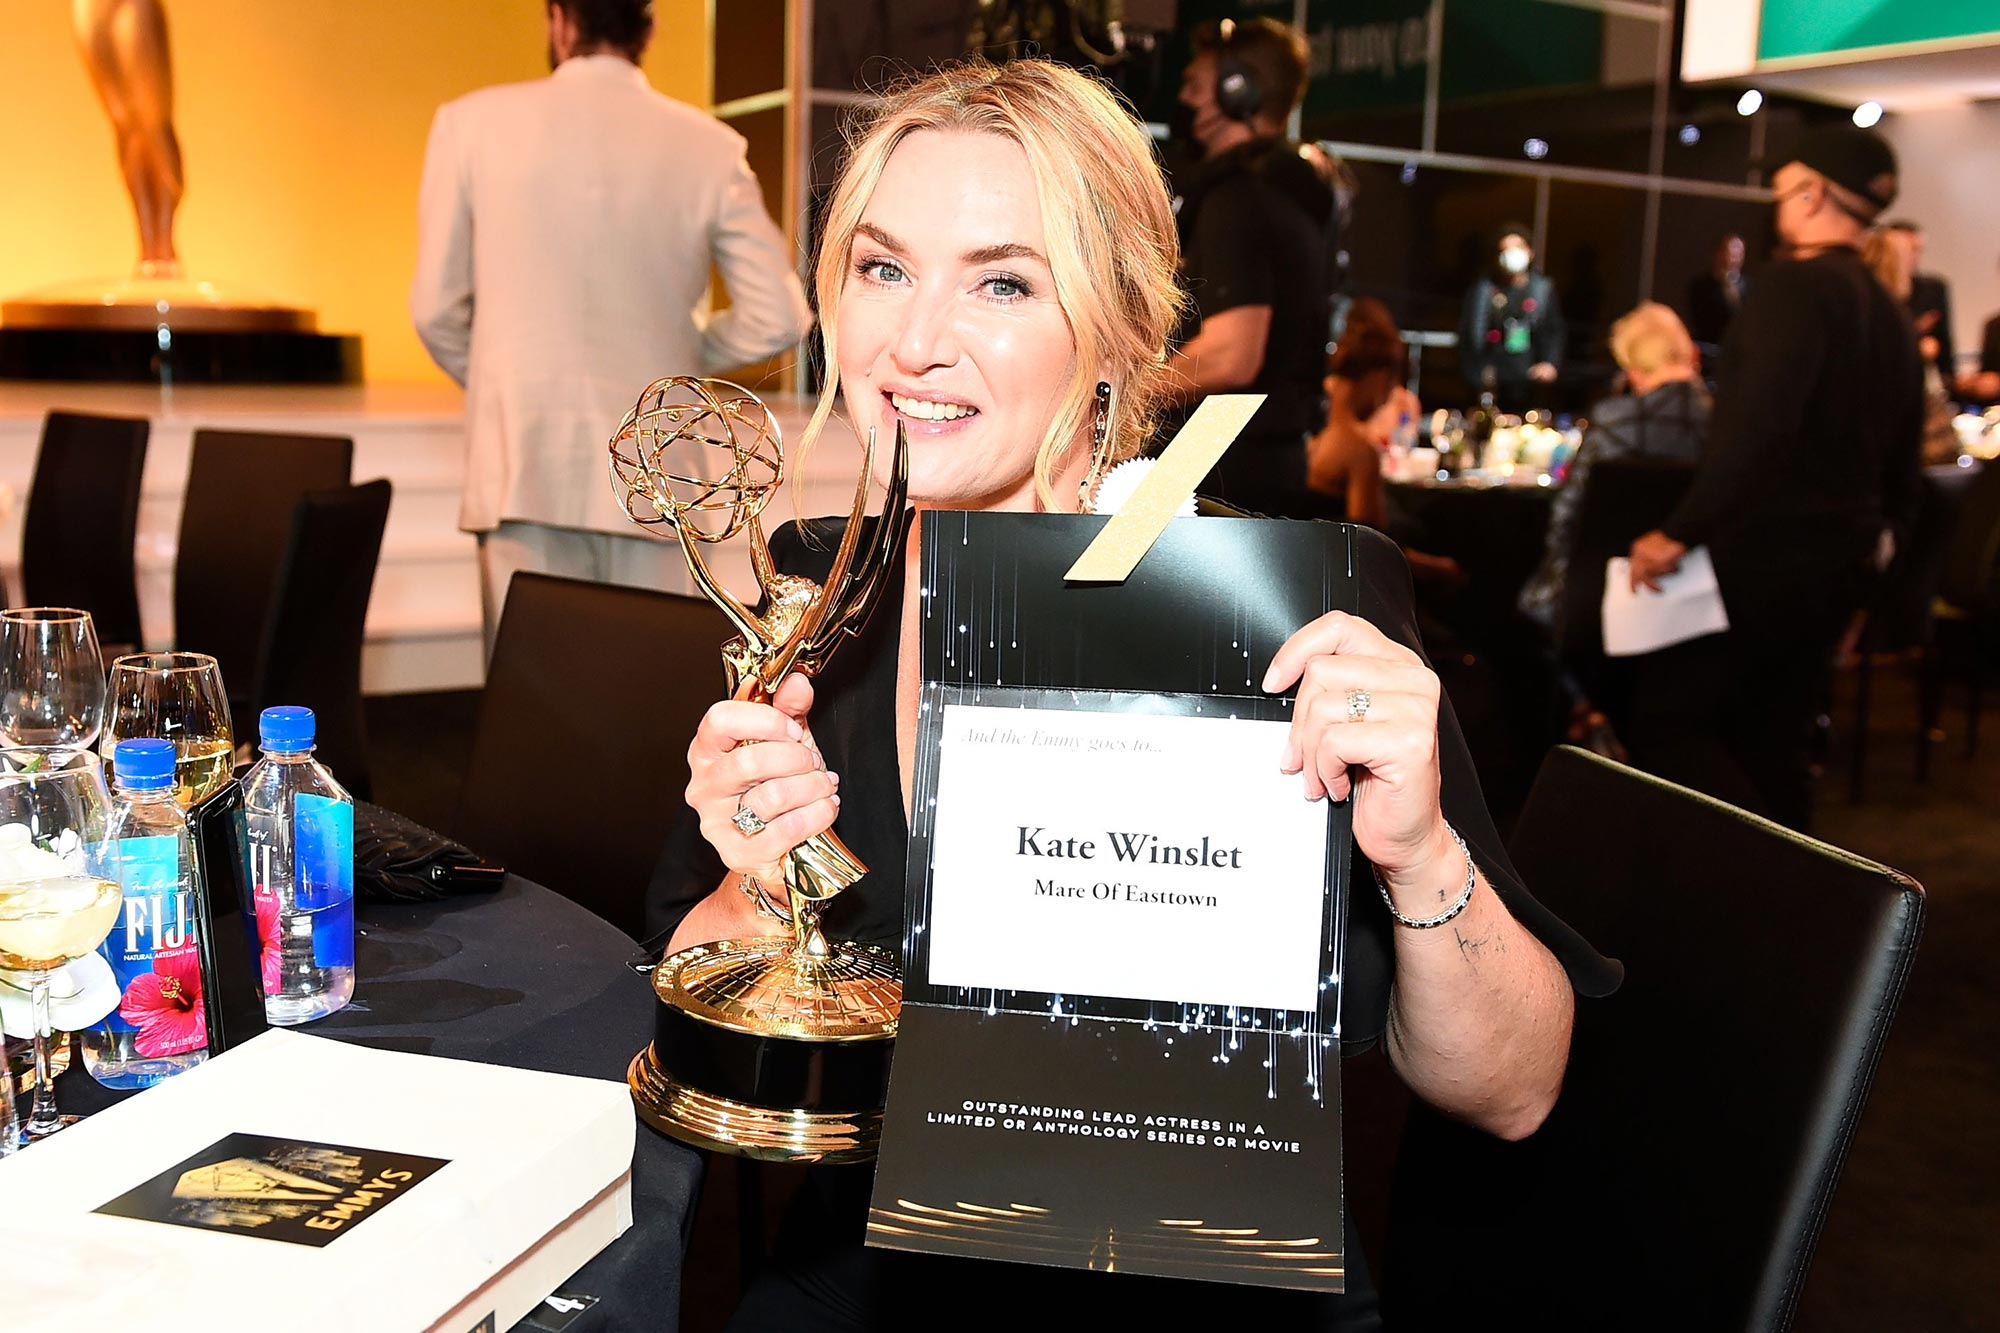 Behind the scenes at the Emmys Awards